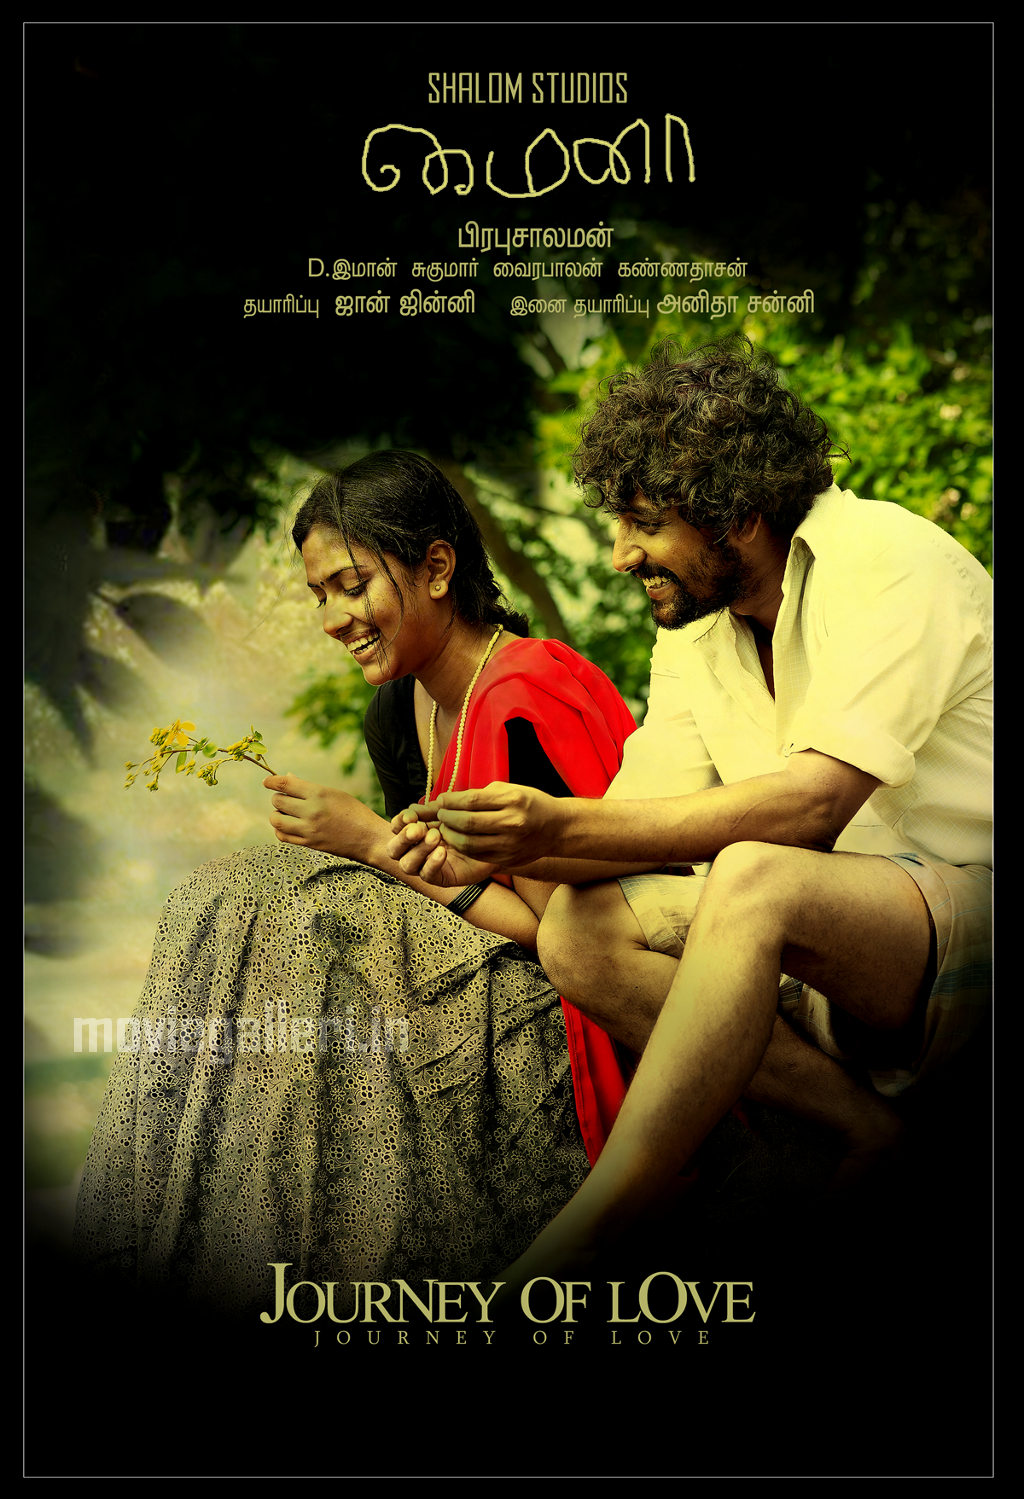 http://1.bp.blogspot.com/_XyMuwleNnx8/TJyzXdppv8I/AAAAAAAADRQ/9copQMk1mcA/s1600/mynaa-movie-wallpapers-posters-03.jpg